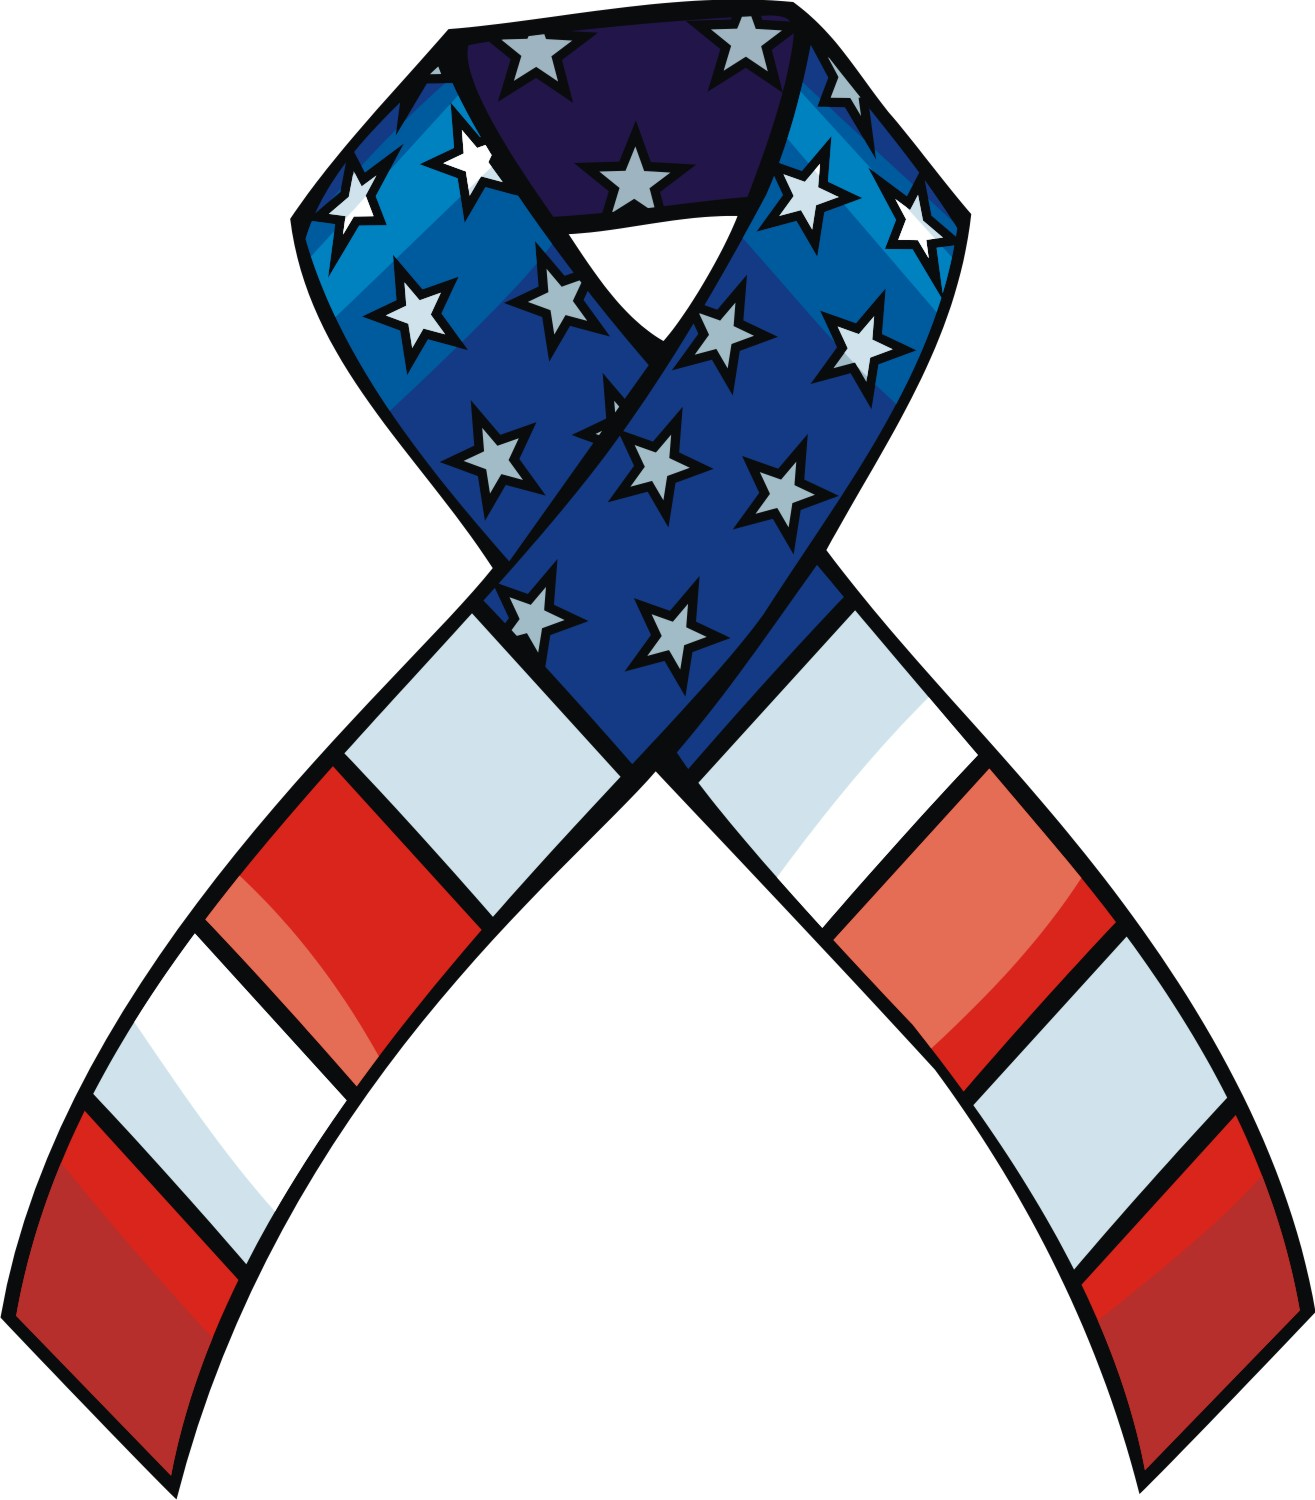 Memorial day ribbon clipart vector Memorial day ribbon clipart - ClipartFest vector